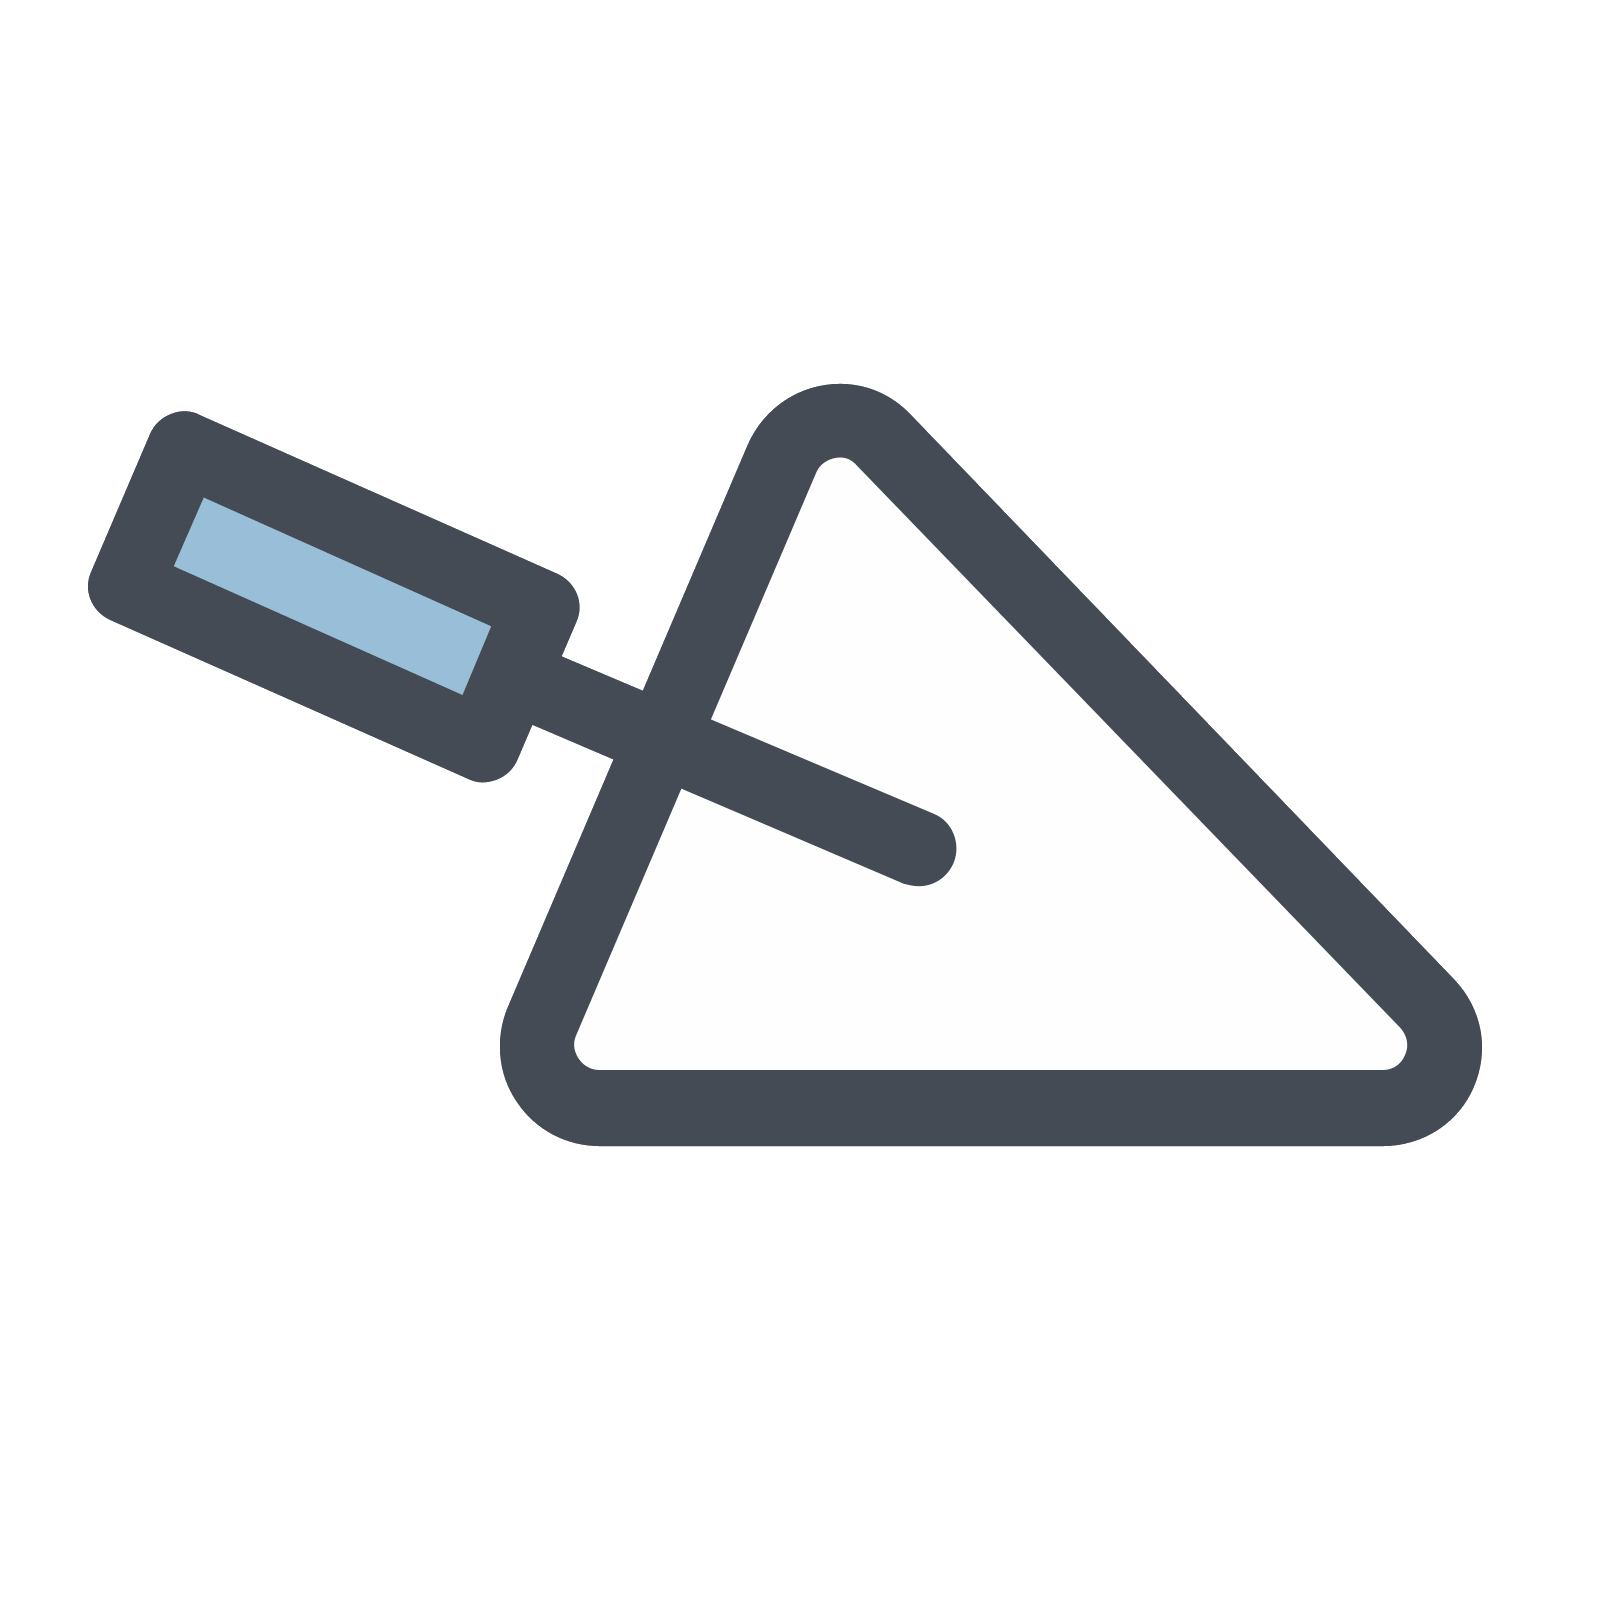 Trowel vector. Icon free download png